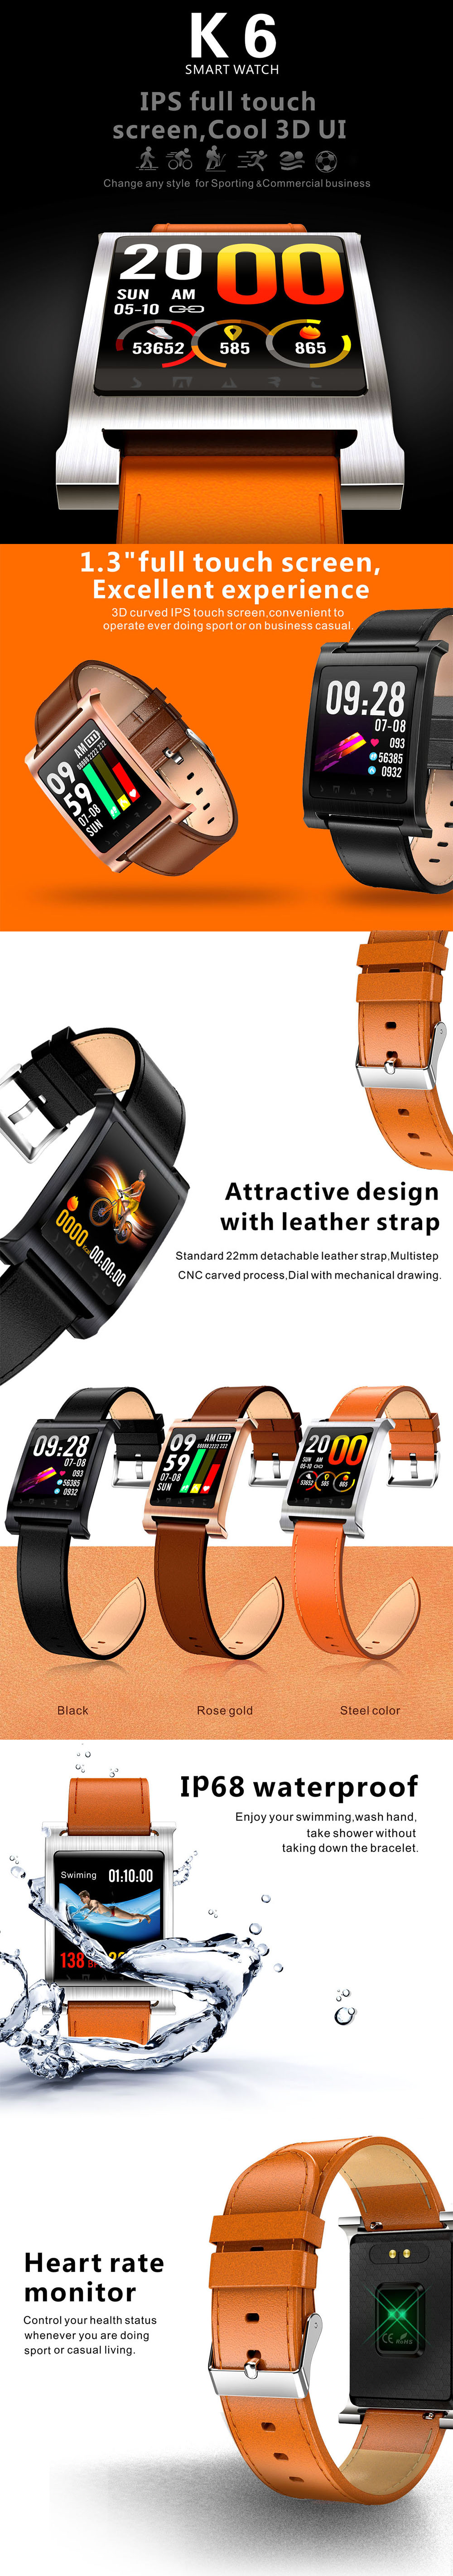 Bakeey-K6-Genuine-Leather-13-inch-Blood-Pressure-Oxygen-Heart-Rate-Task-Reminder-Smart-Watch-1355897